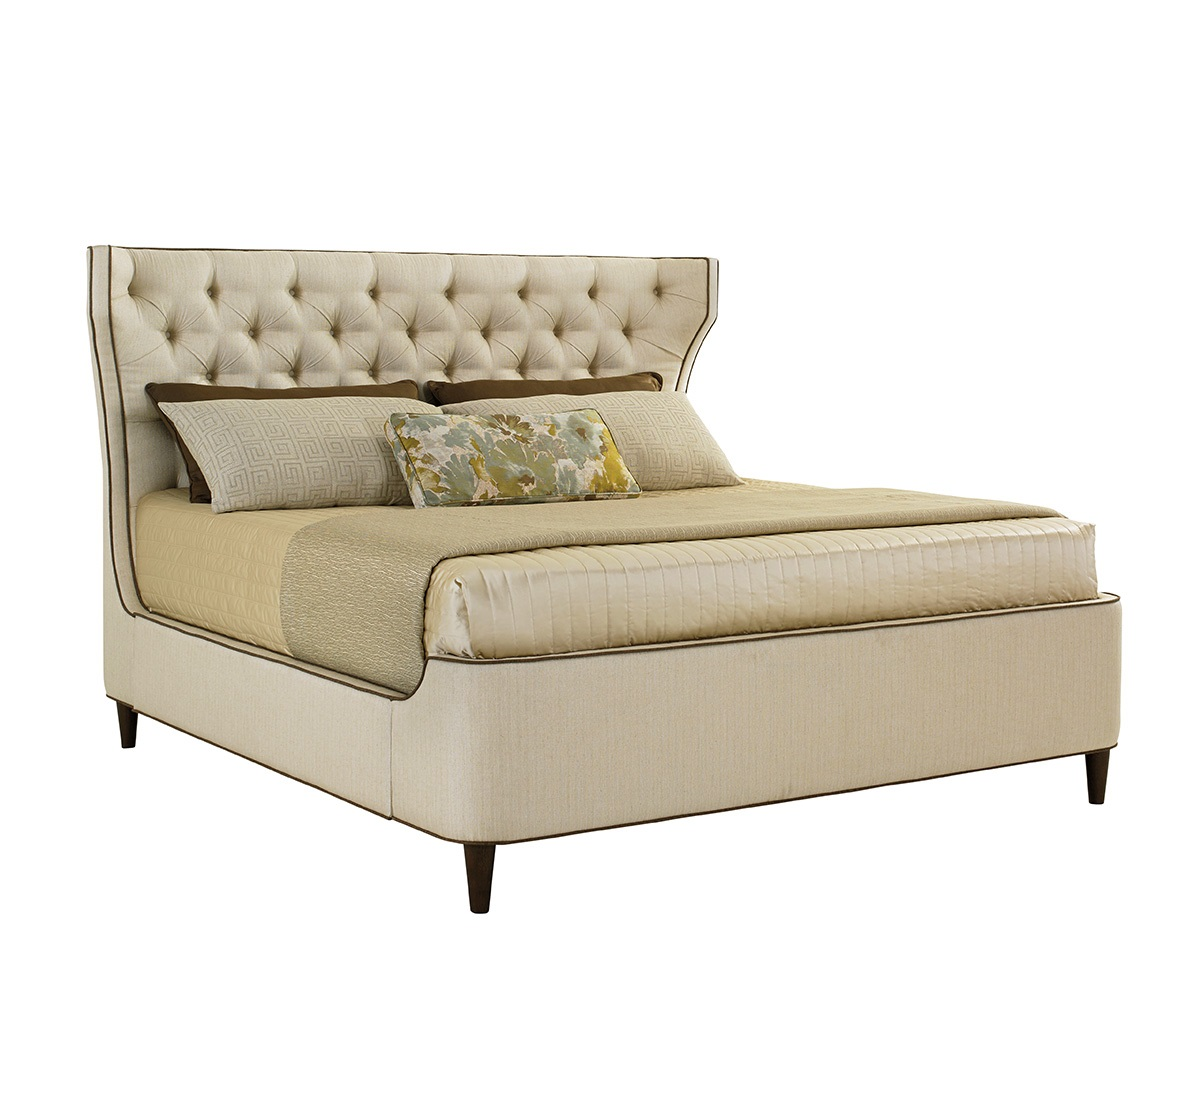 Macarthur Park Mulholland Platform Bed, Lexington Platform Bed